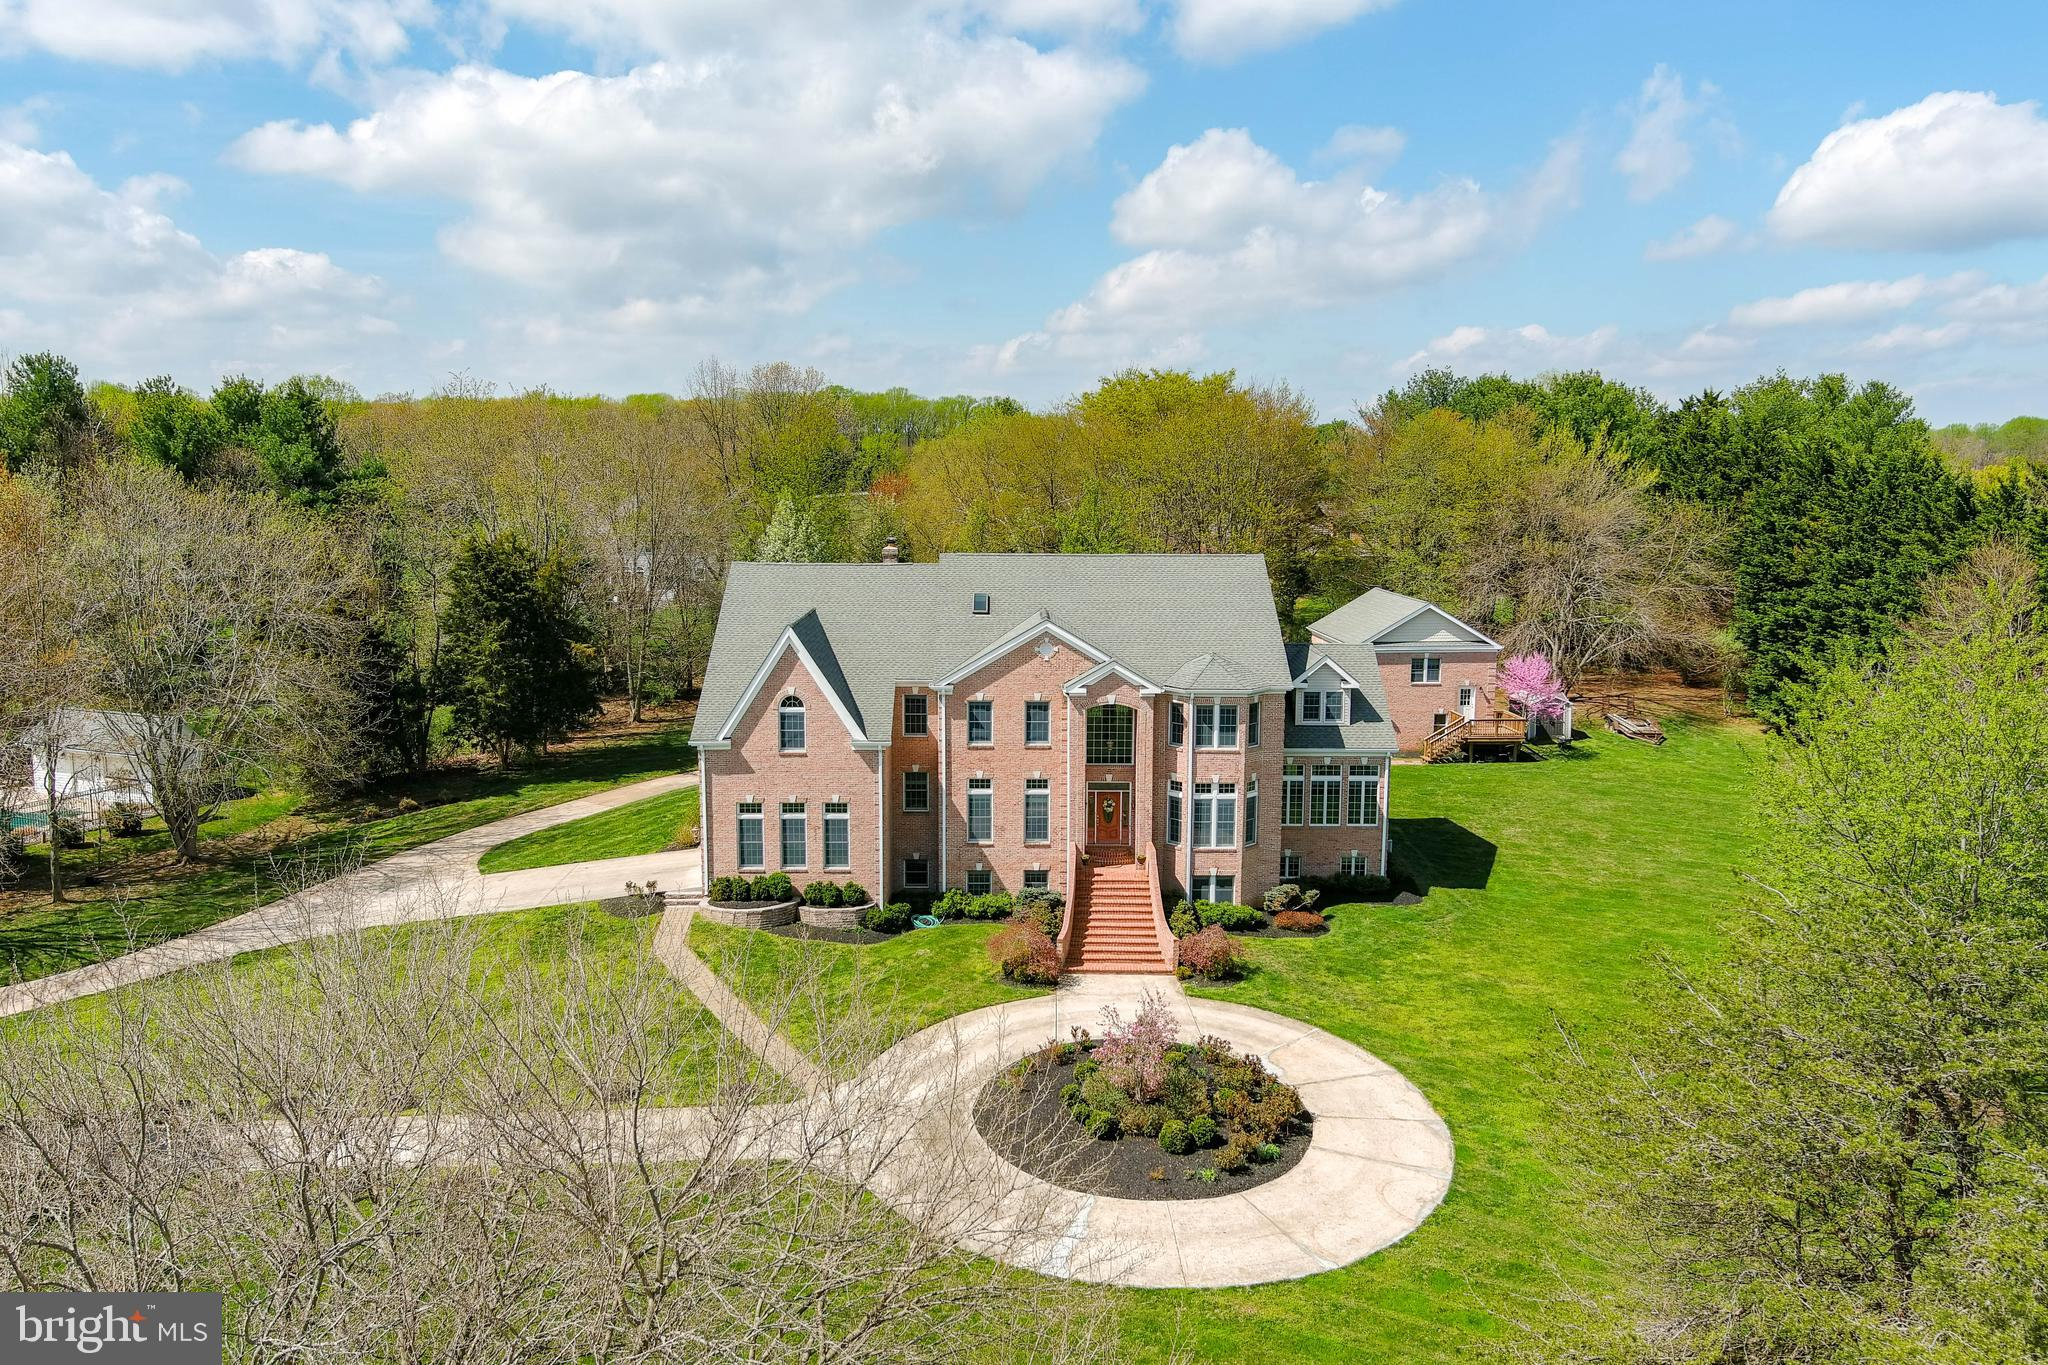 No expense was spared in this magnificent 6-bedroom, 6.5-bath mansion in Laytonsville, as the owner